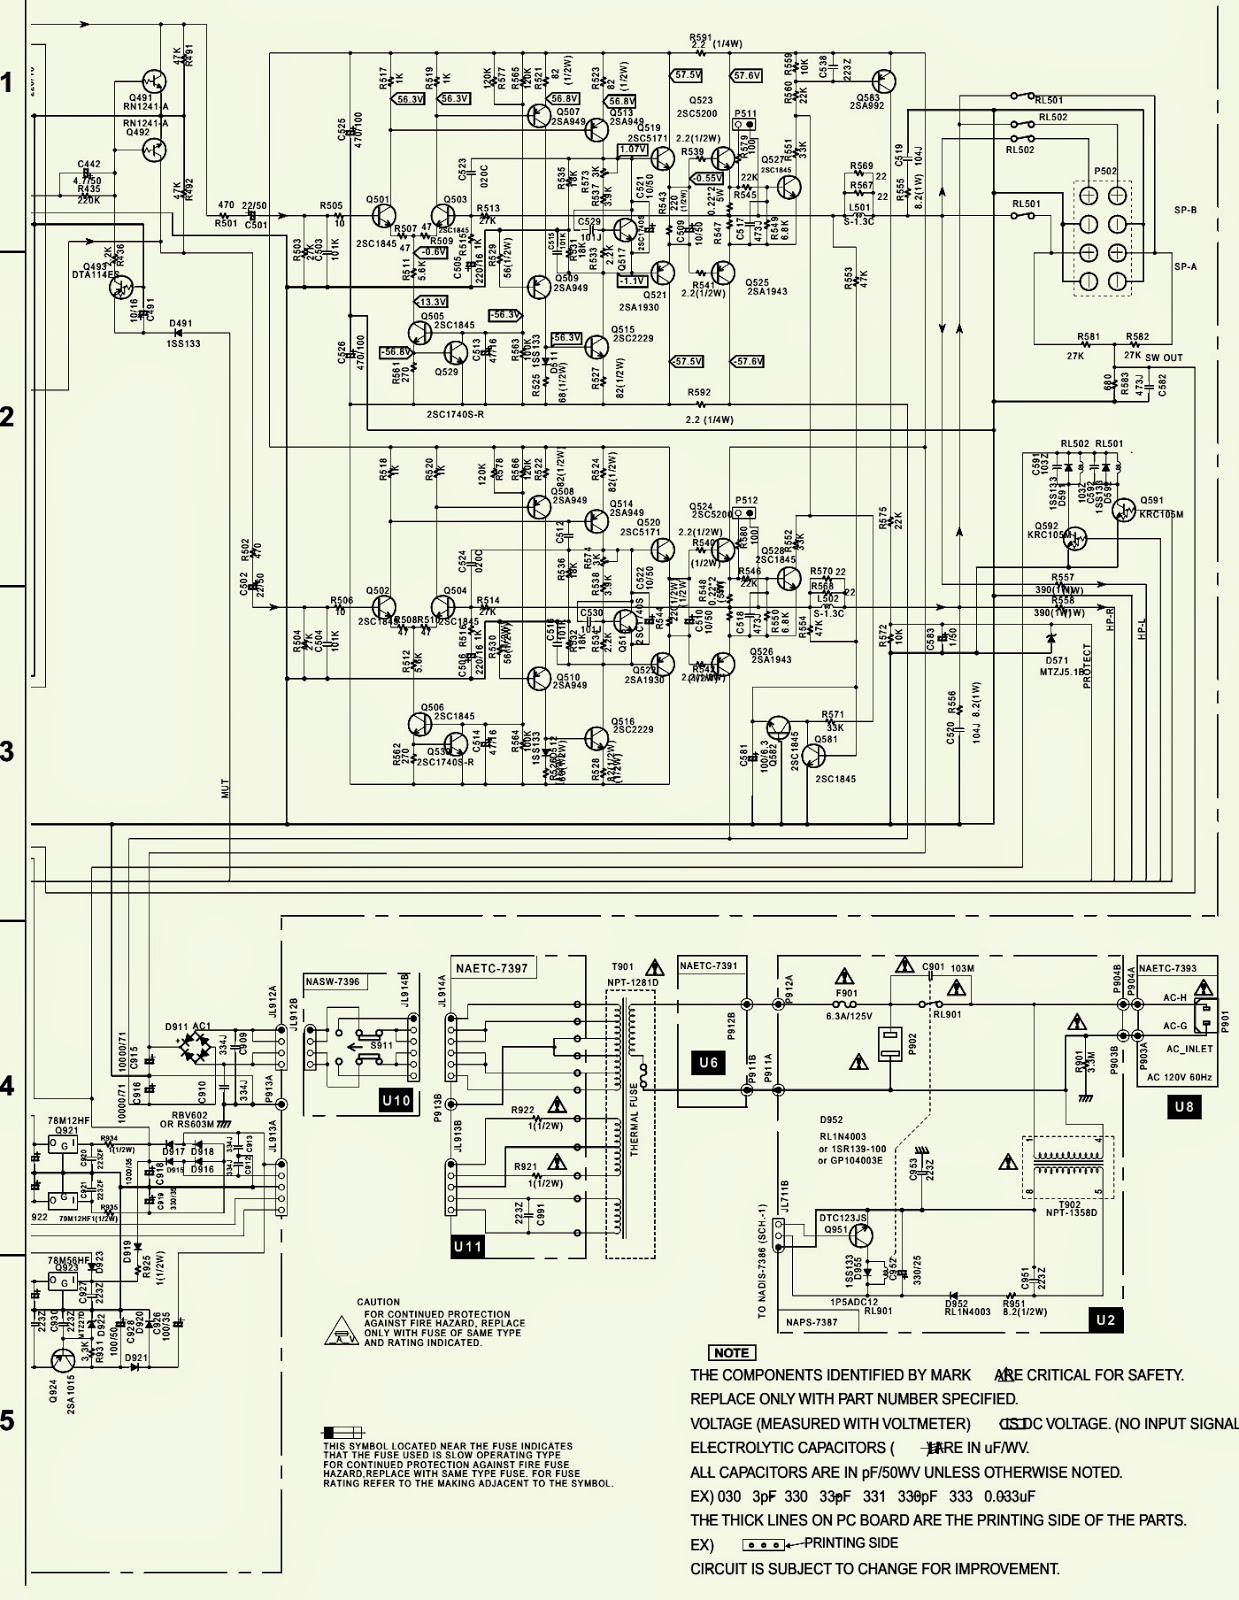 hight resolution of integra dtm5 3 schematic circuit diagram 2sc5200 npn 2sa1943 pnp outout transistors electro help